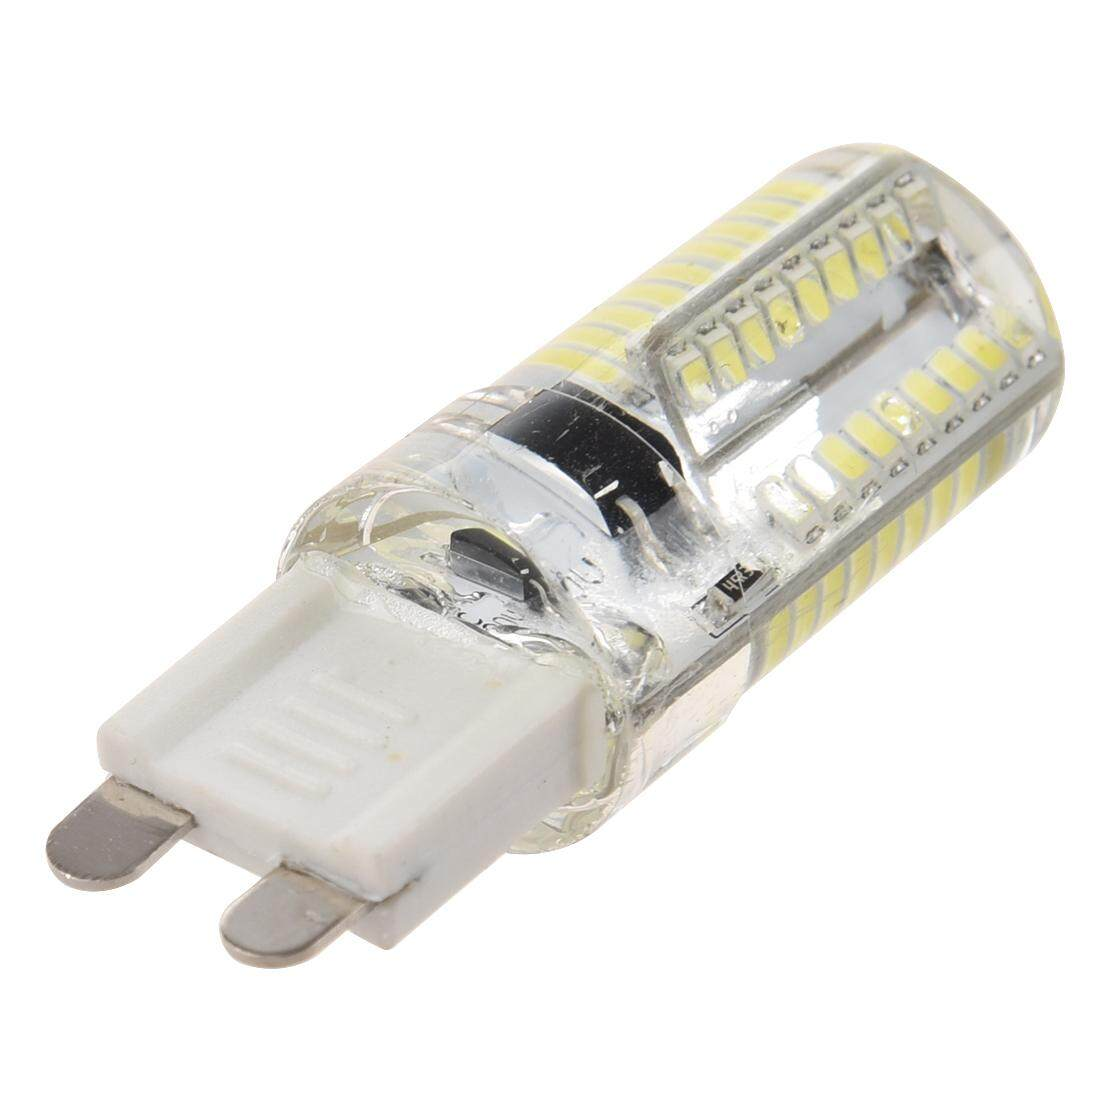 Buy & Sell Cheapest G9 LED 220V Best Quality Product Deals ...